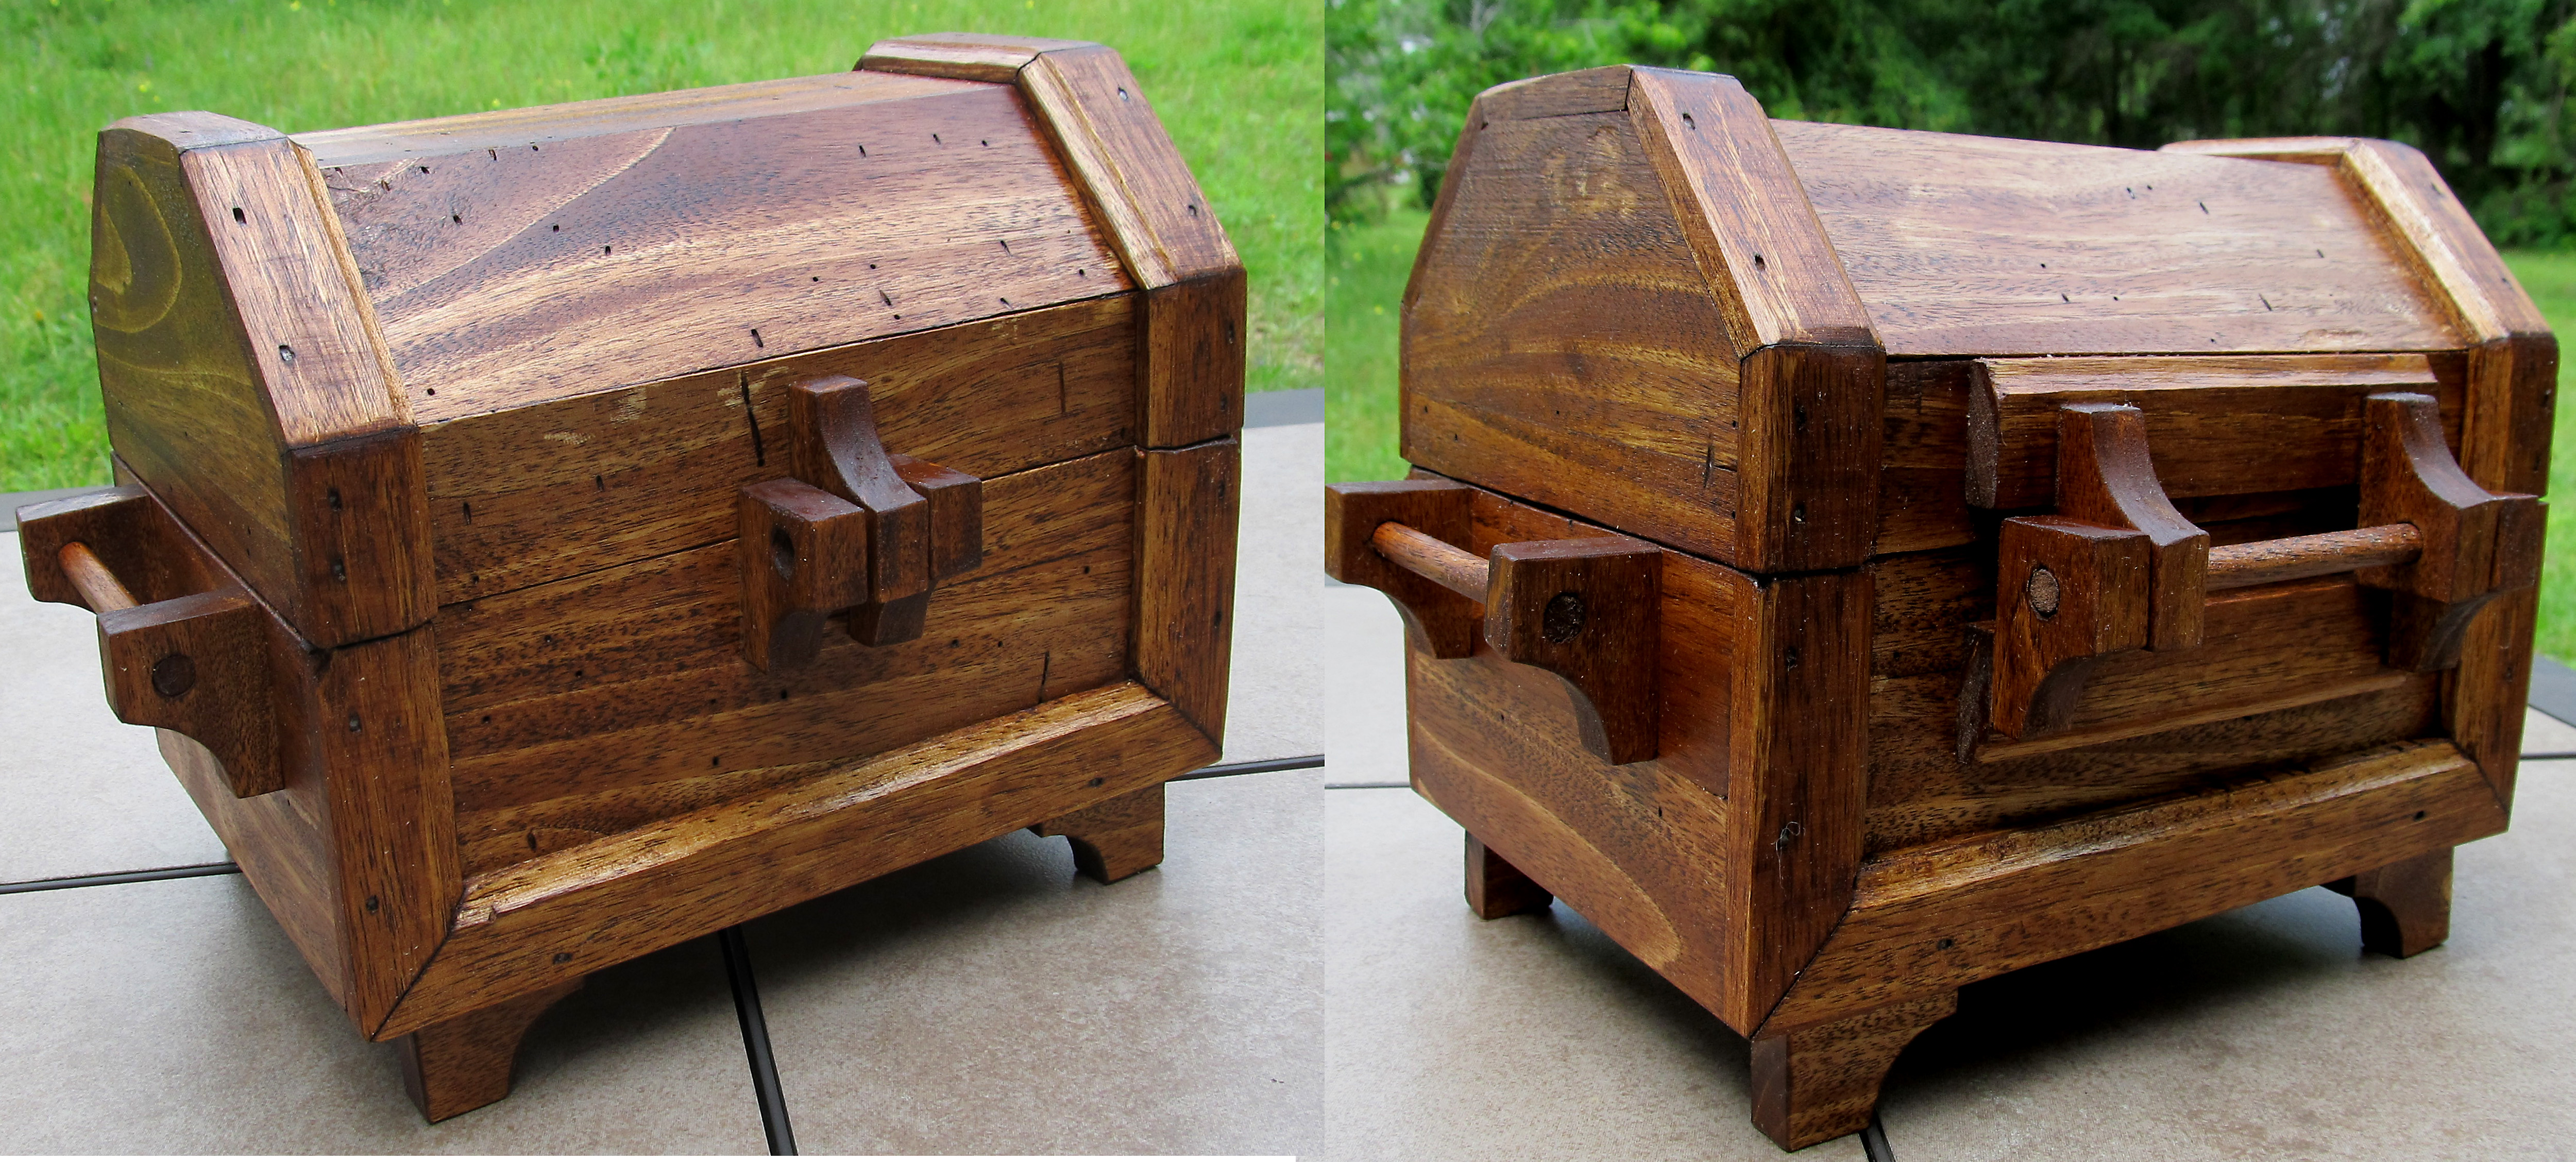 All Wood Treasure Chest By Zimzim1066 On DeviantArt. Full resolution  portraiture, nominally Width 5000 Height 2256 pixels, portraiture with #673D21.